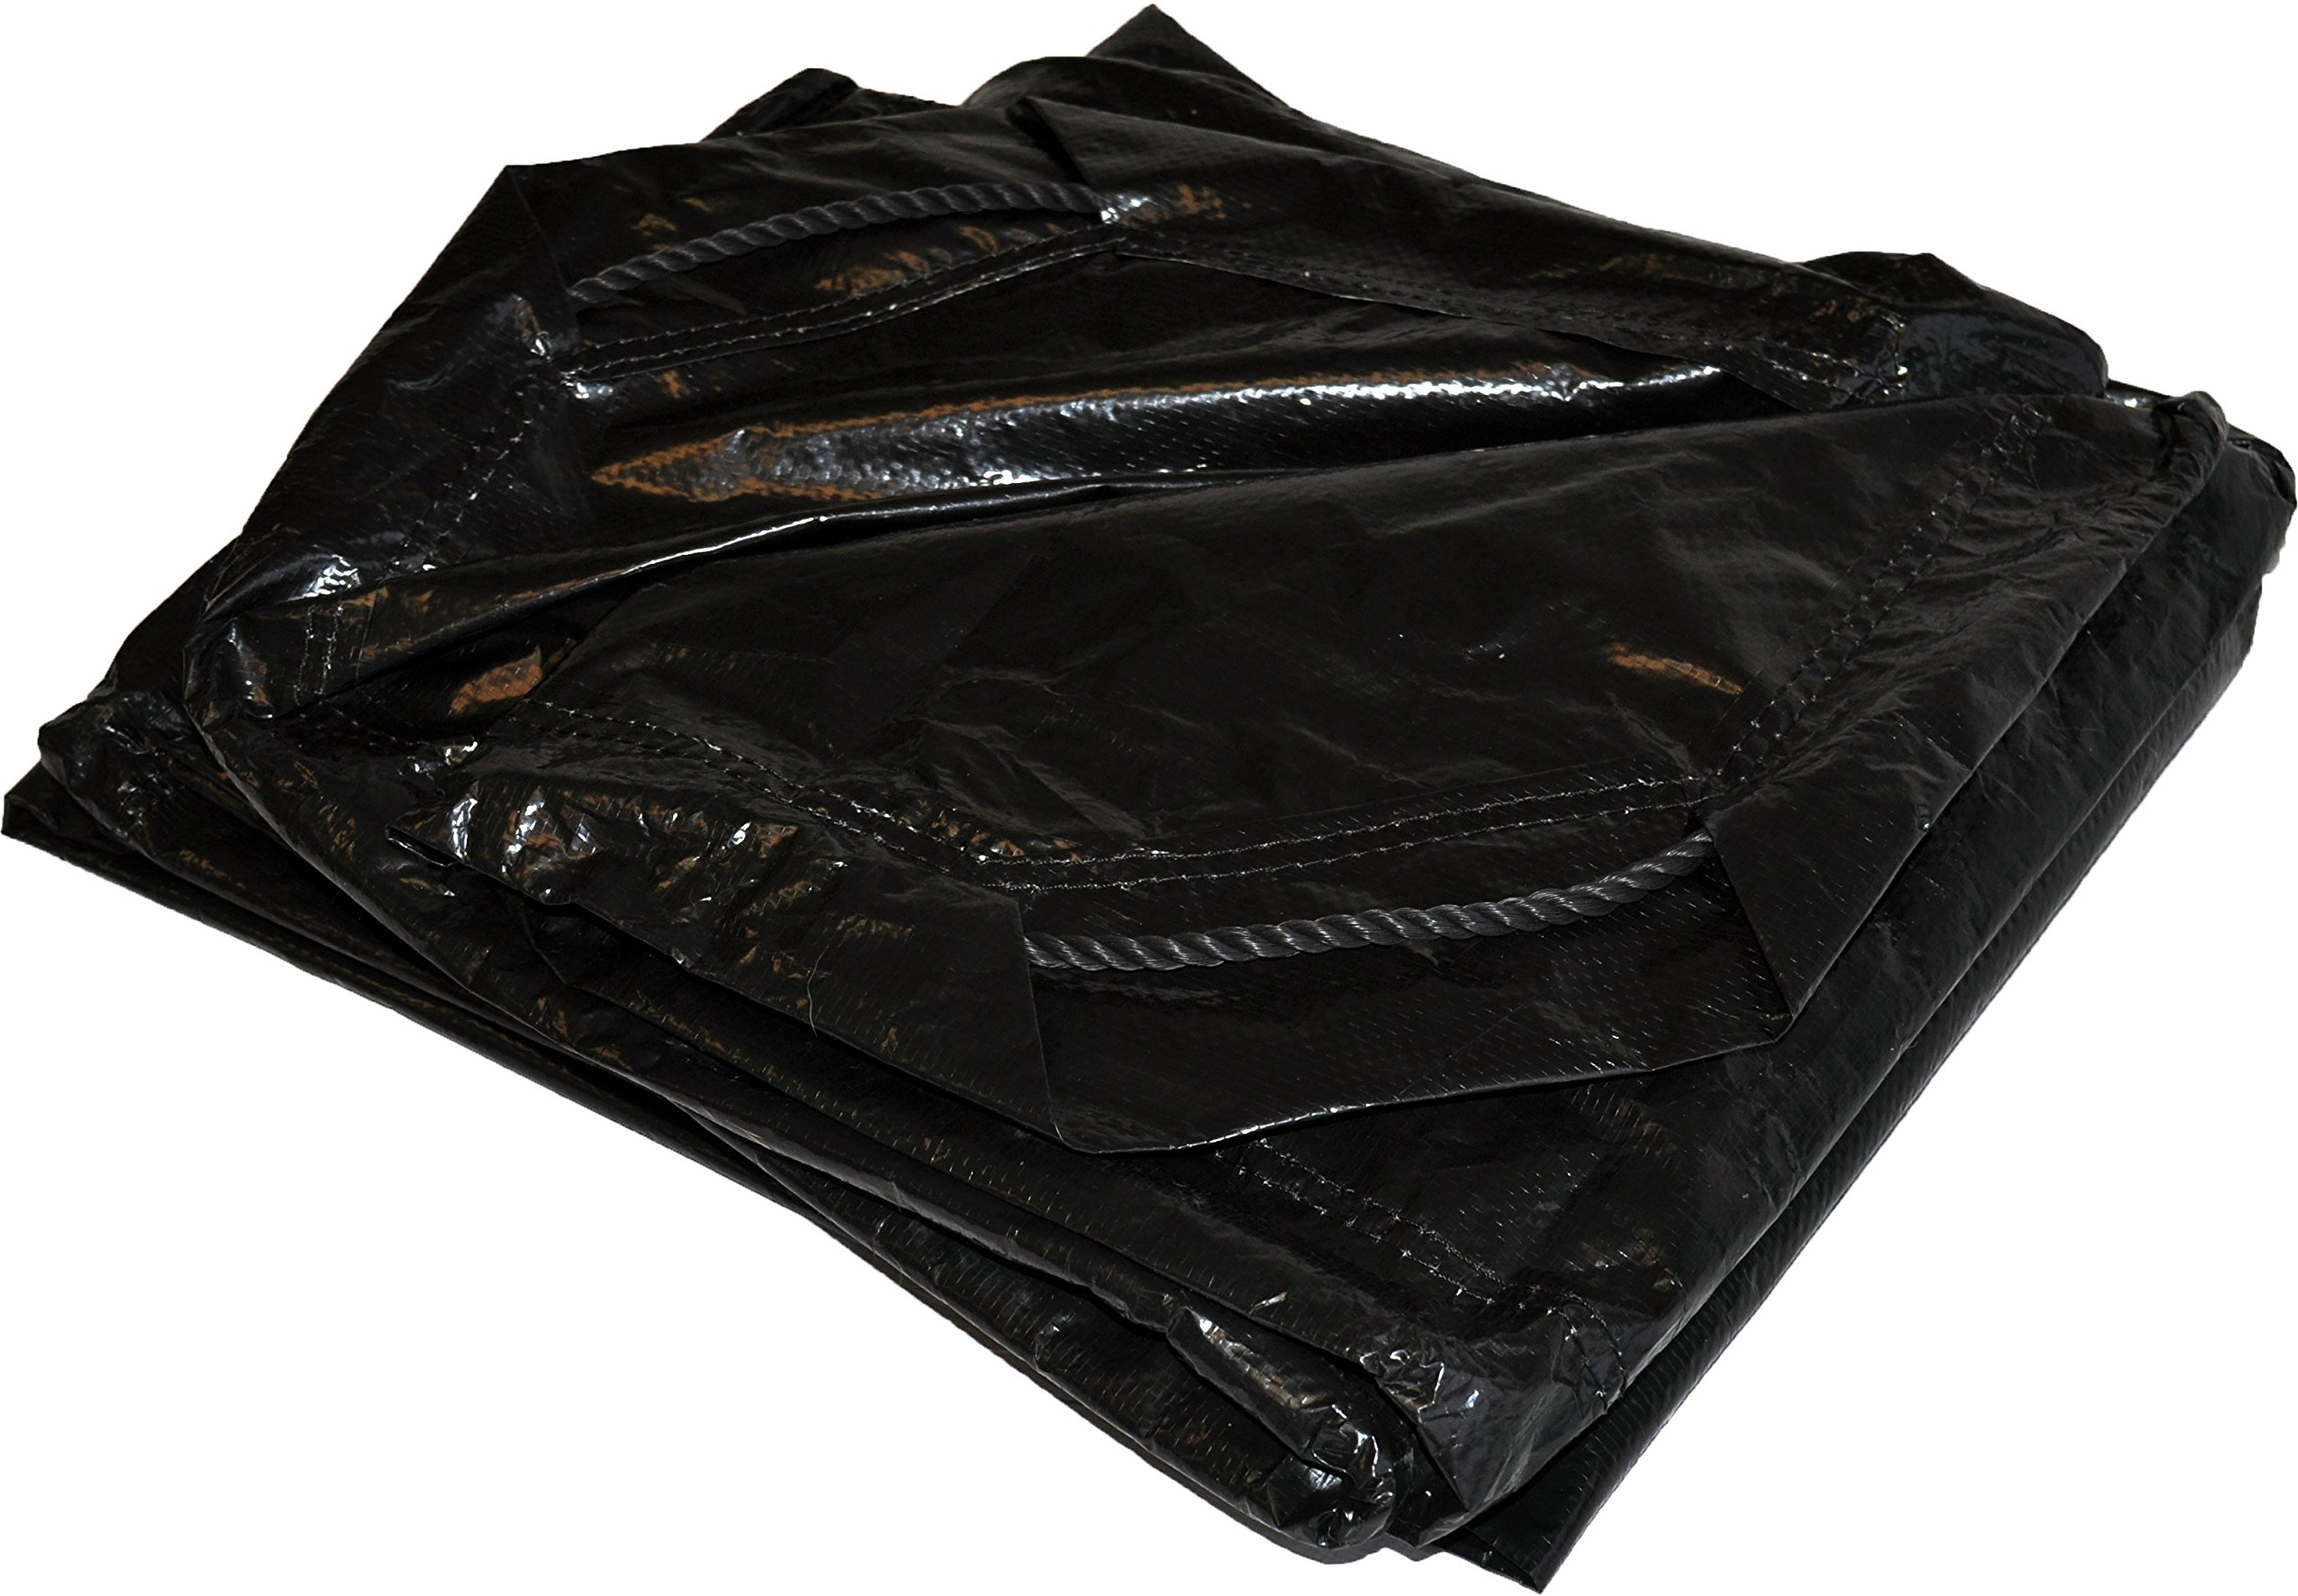 6' x 6' Dry Top Black Drawstring 8-mil Poly Tarp Item #500660 by DRY TOP